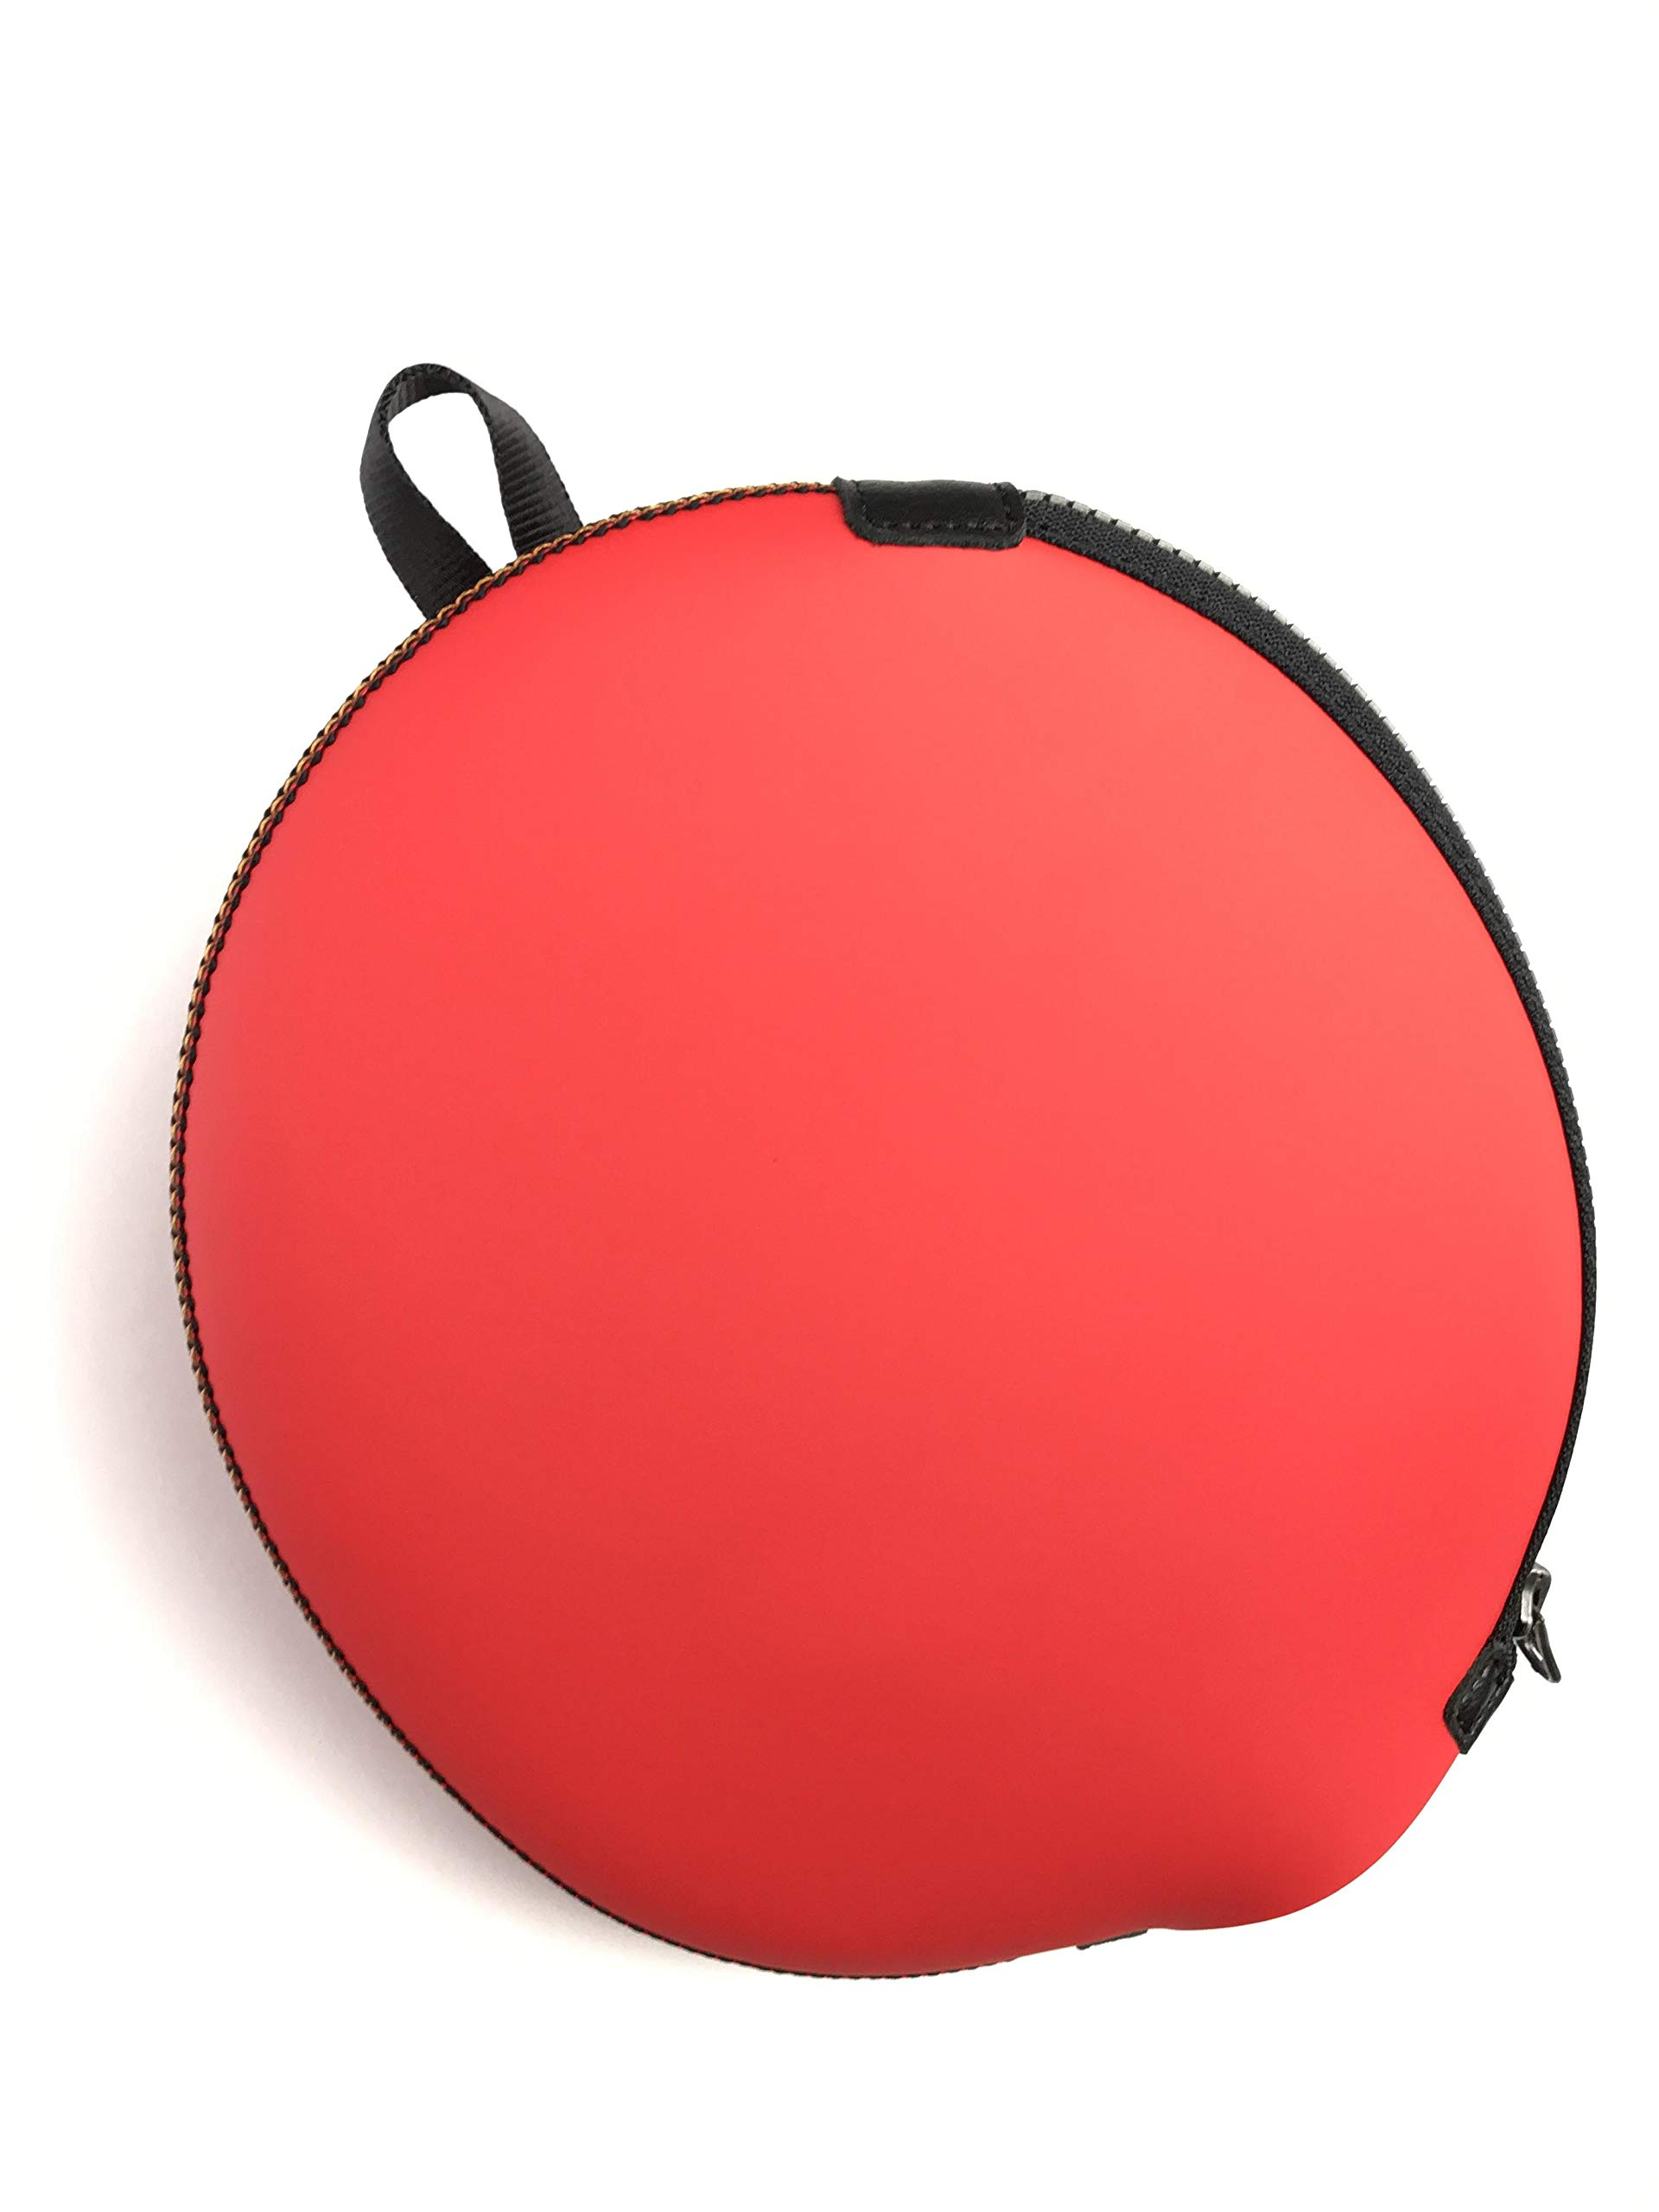 ONEJOY Ping Pong,Table Tennis Racquet Bag,Sleeves with Zipper AJ60,Loop to Hook,19cm x 17cm, for 1 Racquet/Racket/Paddle.